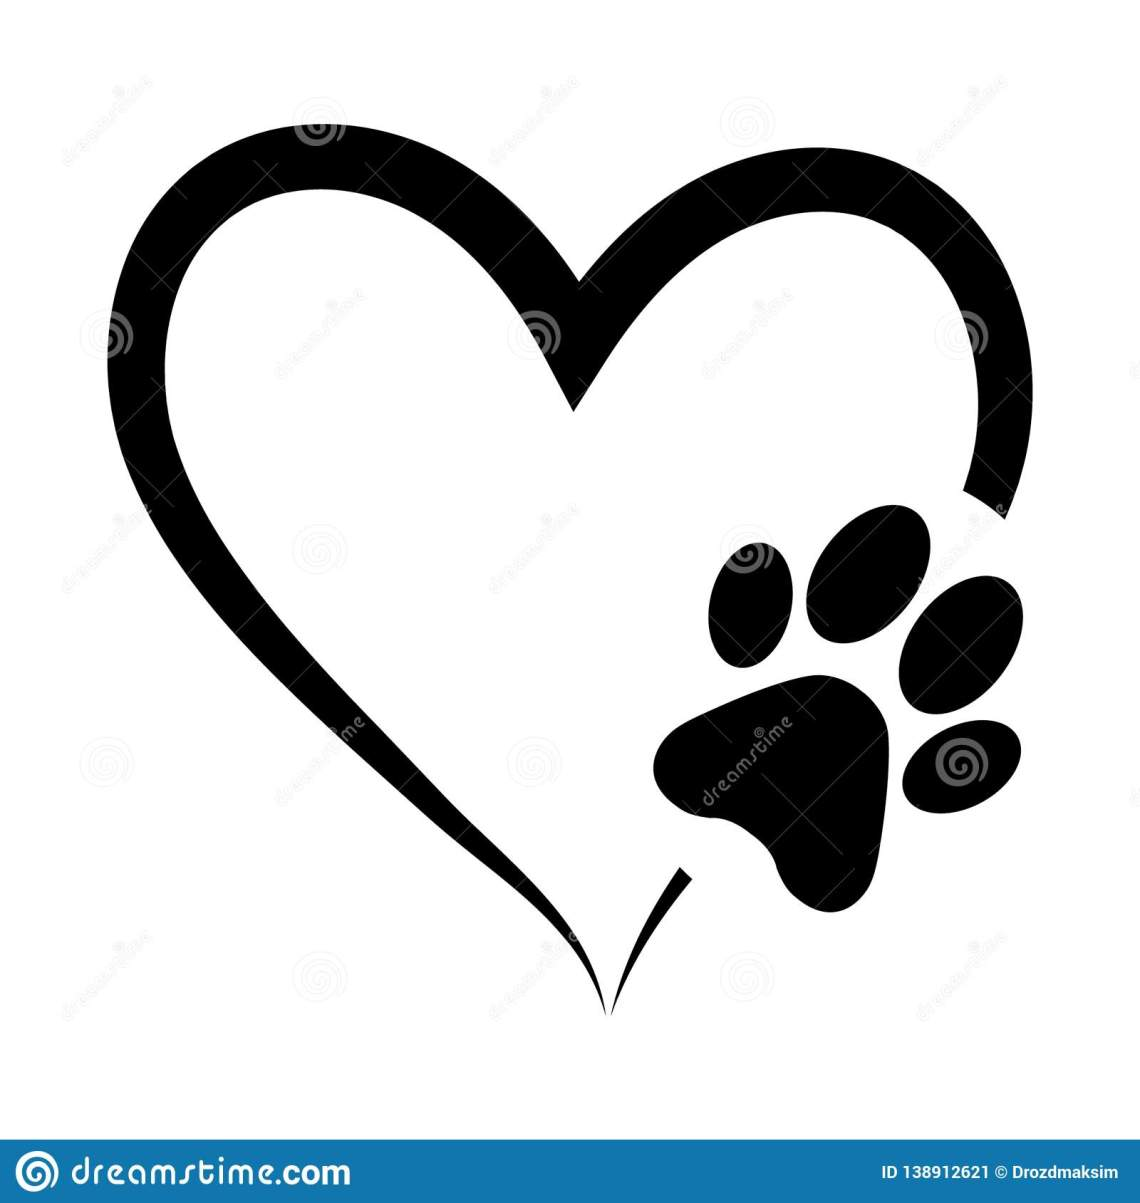 Download Free Svg Heart Paw - Paw heart | Etsy / A nearly perfect ...